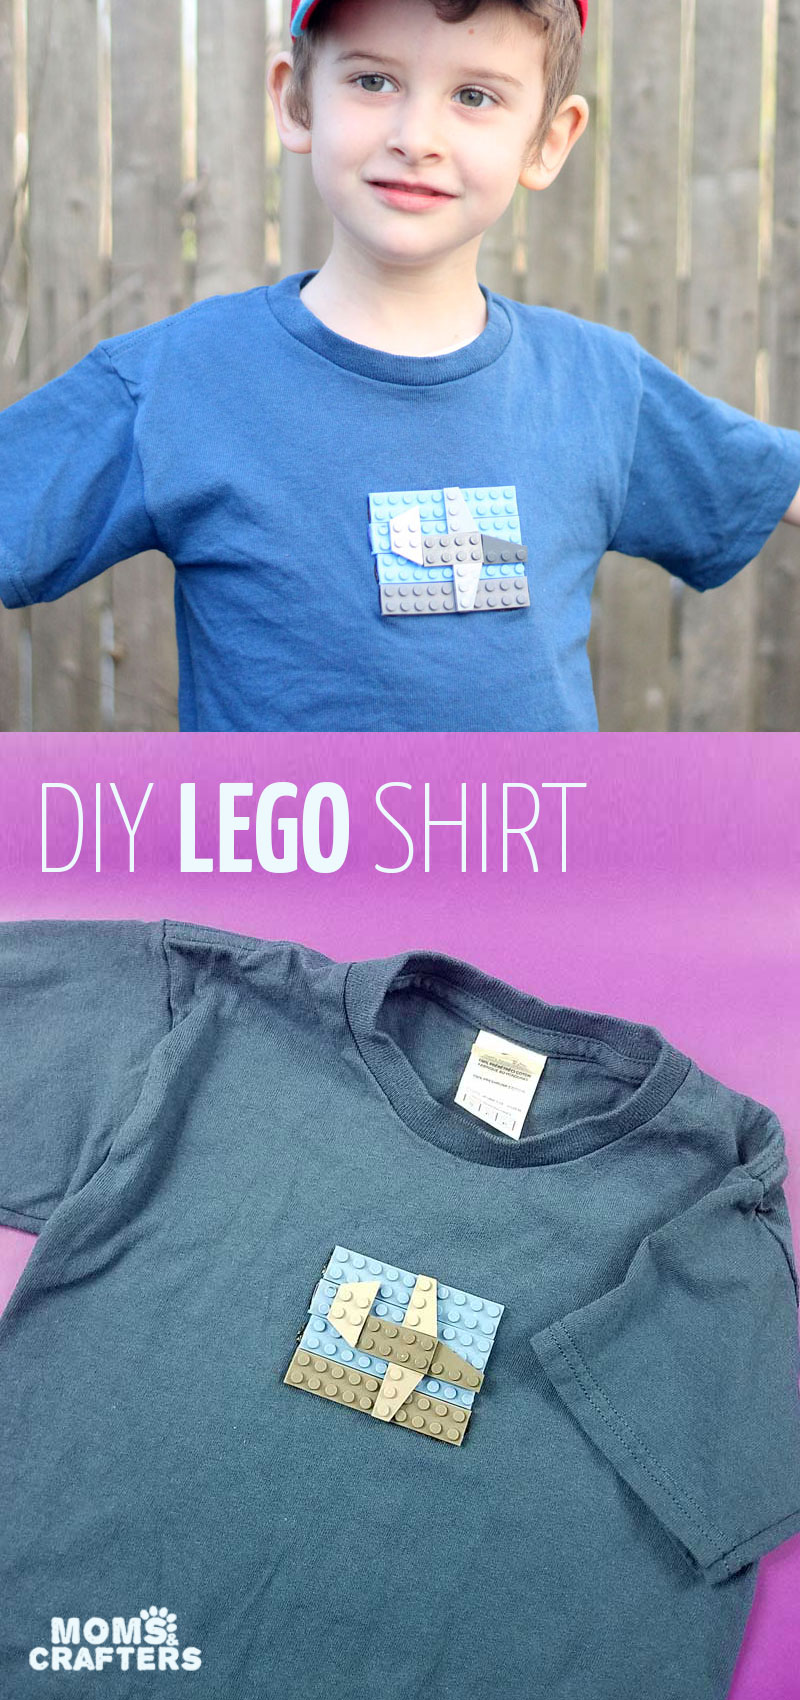 Click for instructions to create an adorable DIY LEGOs t-shirt for your boy or girl! This cool plain t-shirt update is so cute for LEGO fans and one of my favorite LEGO crafts ever! #lego #diy #t-shirt #fashion #kidfashion #legofan #momsandcrafters